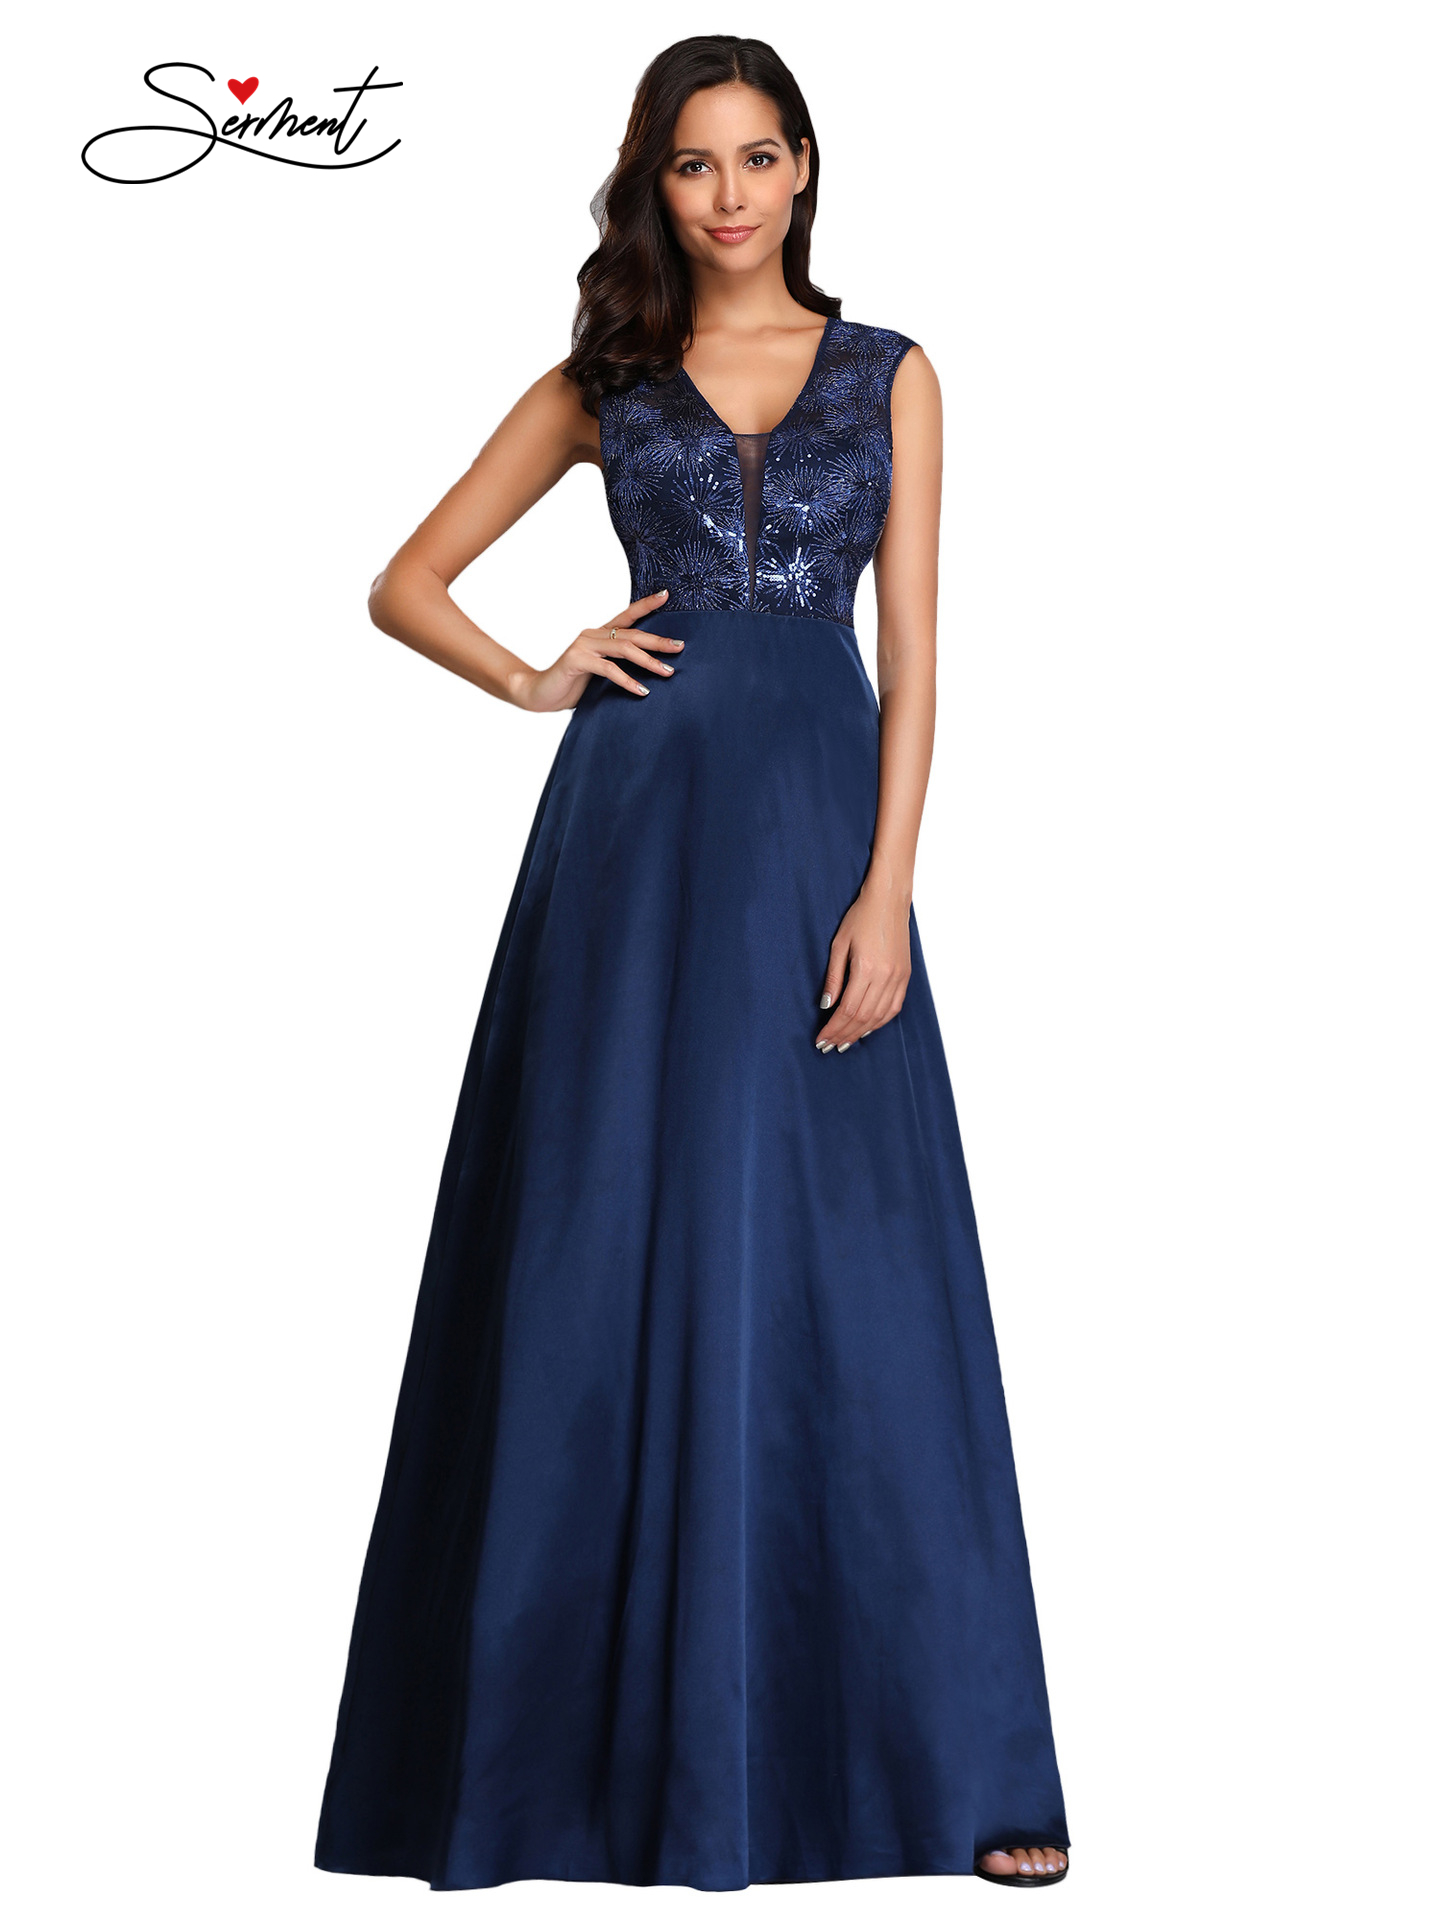 OLLYMURS New Elegant Woman Evening Gown V-neck Sequined Lace Elegant Dress Suitable for Formal Parties